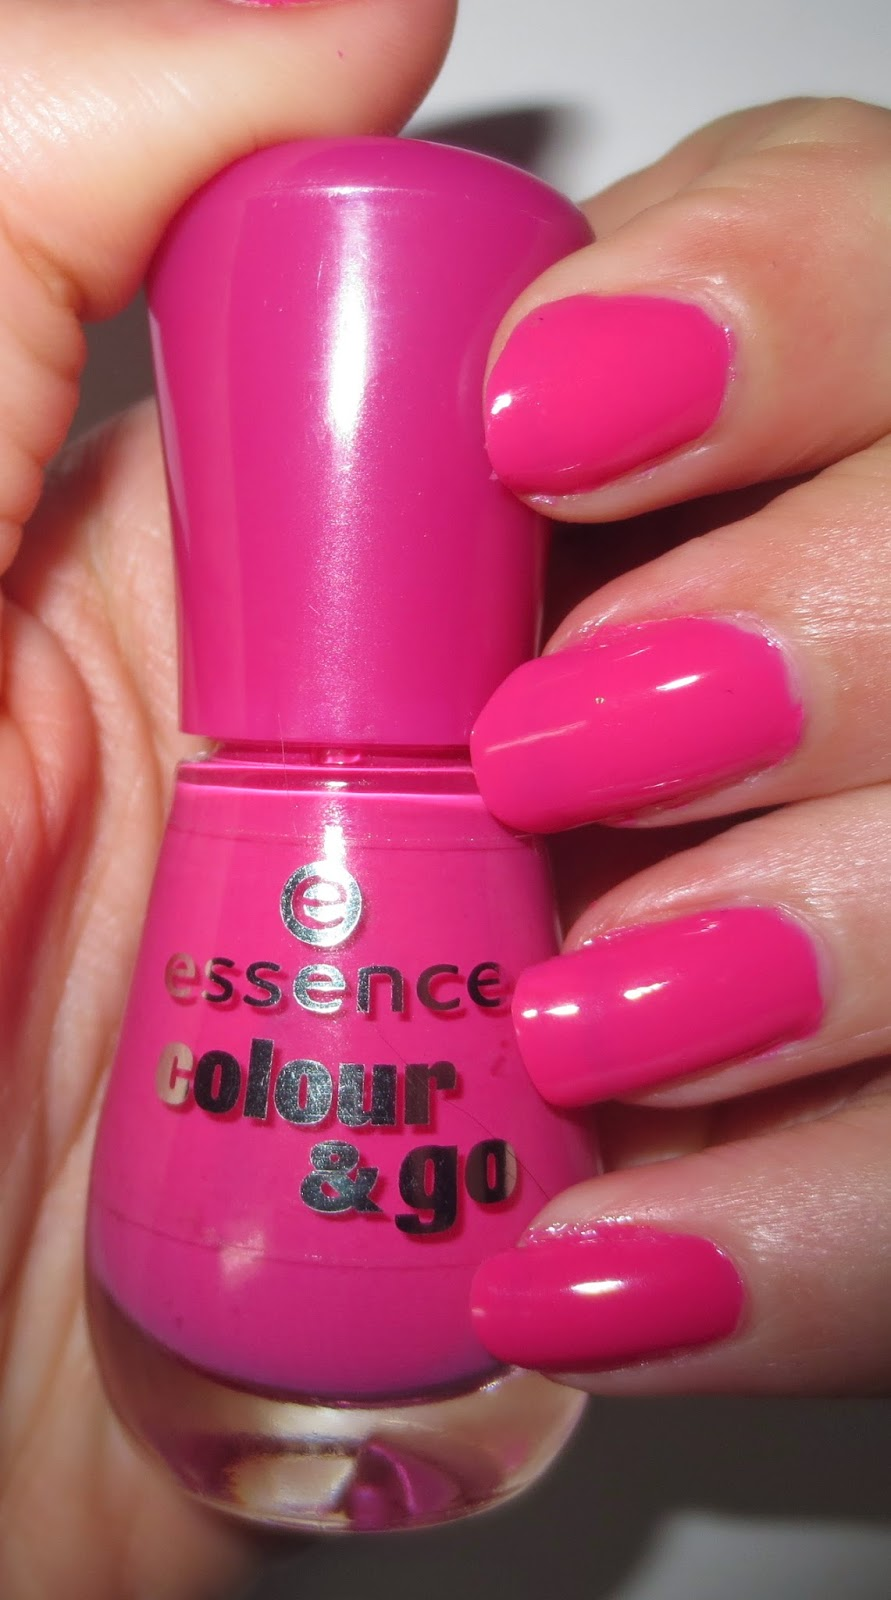 essence's colour & go nail polish in ultimate pink